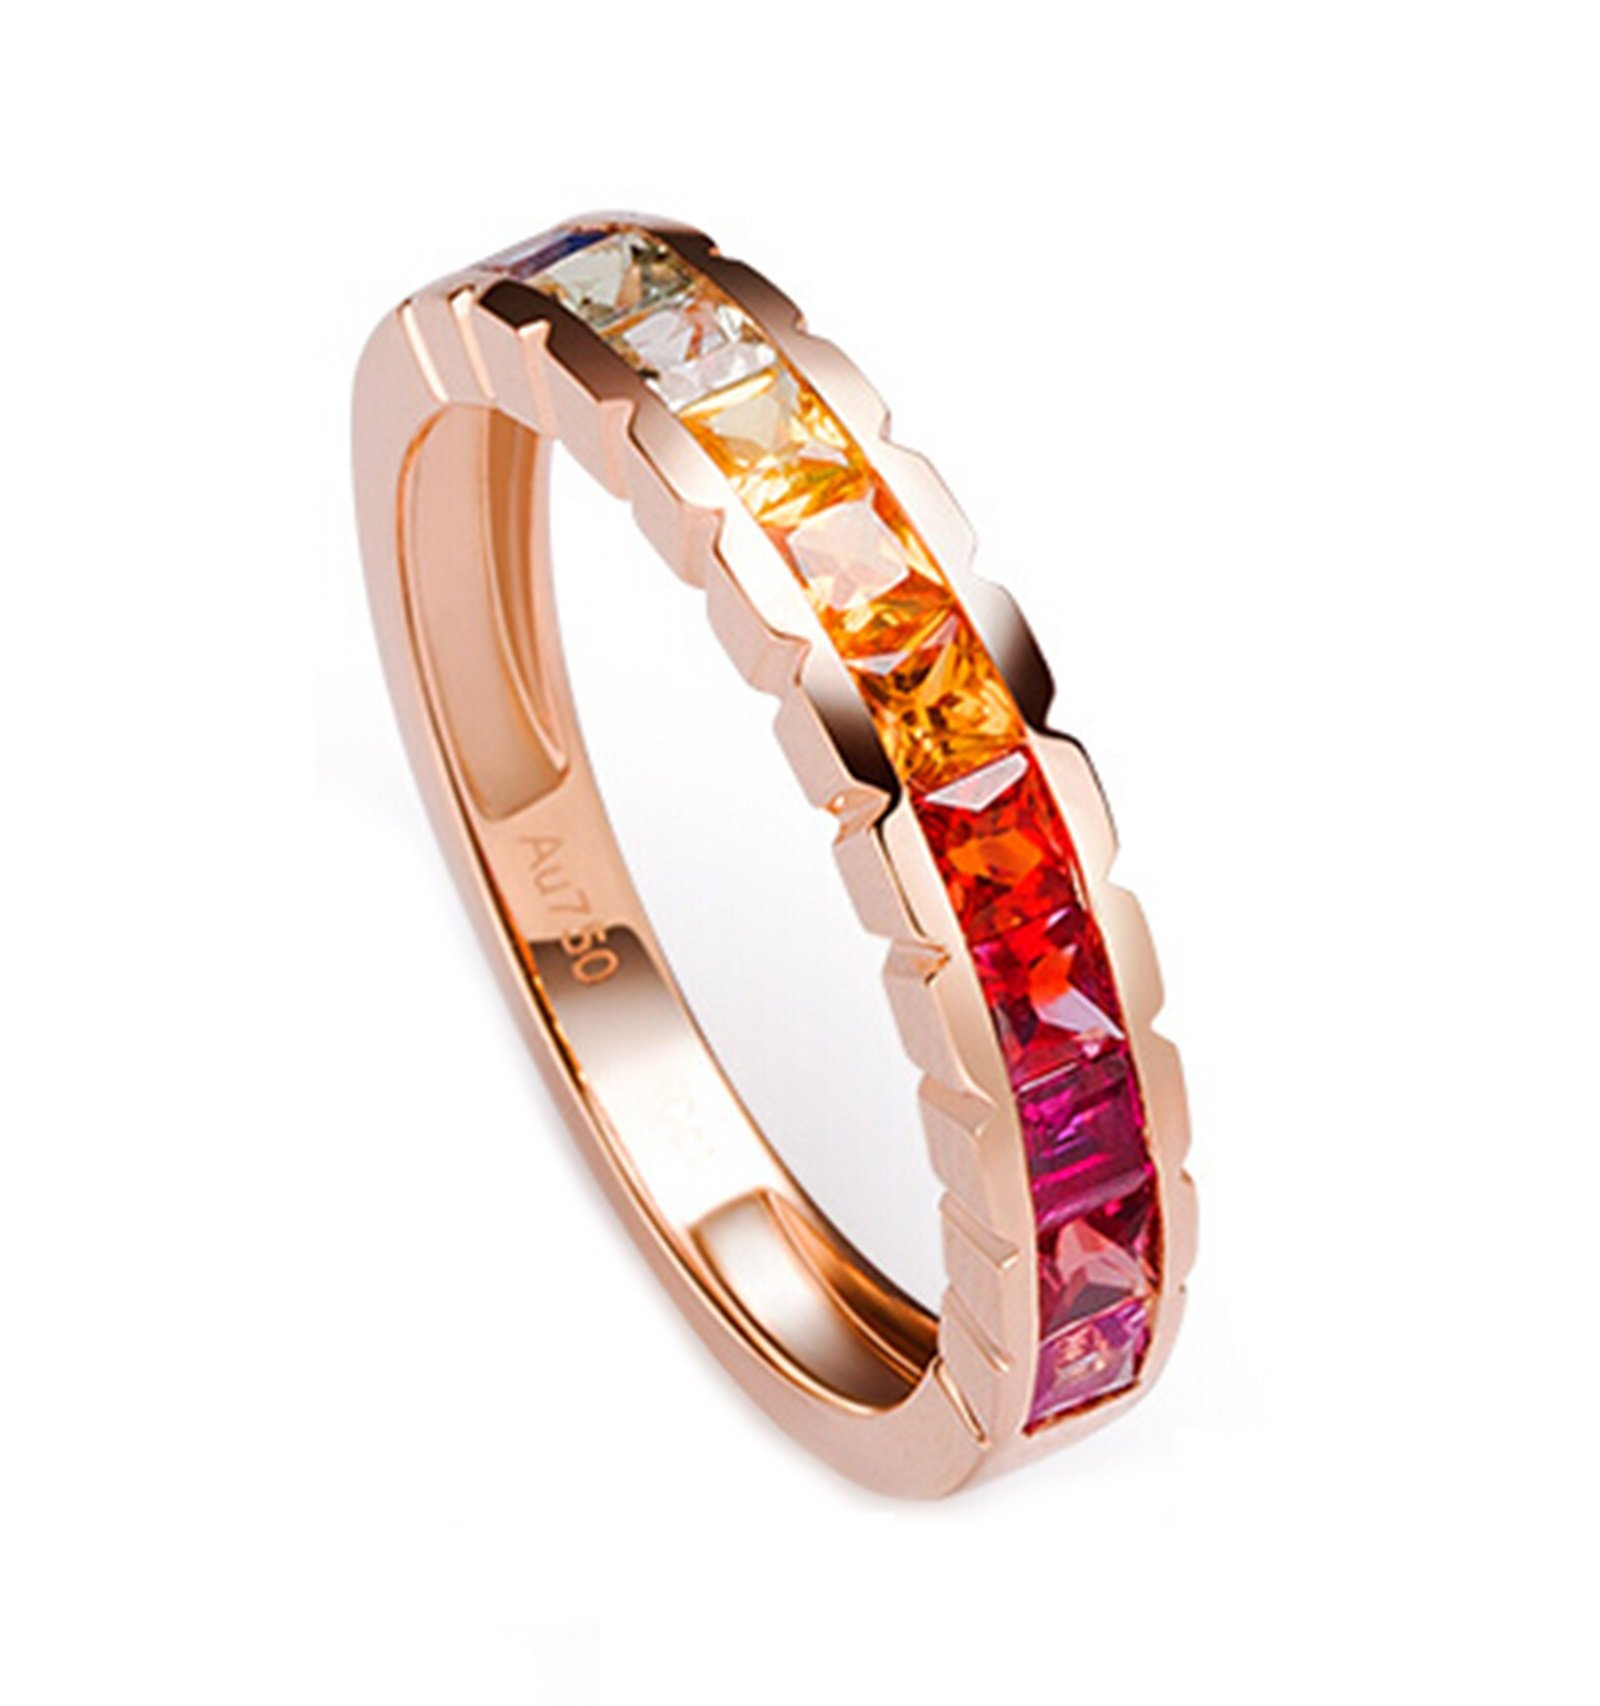 18K Gold Ring,1.2Ct Square Cut Certified Diamond Colorful Sapphire Ruby Promise Ring for Women Size 8